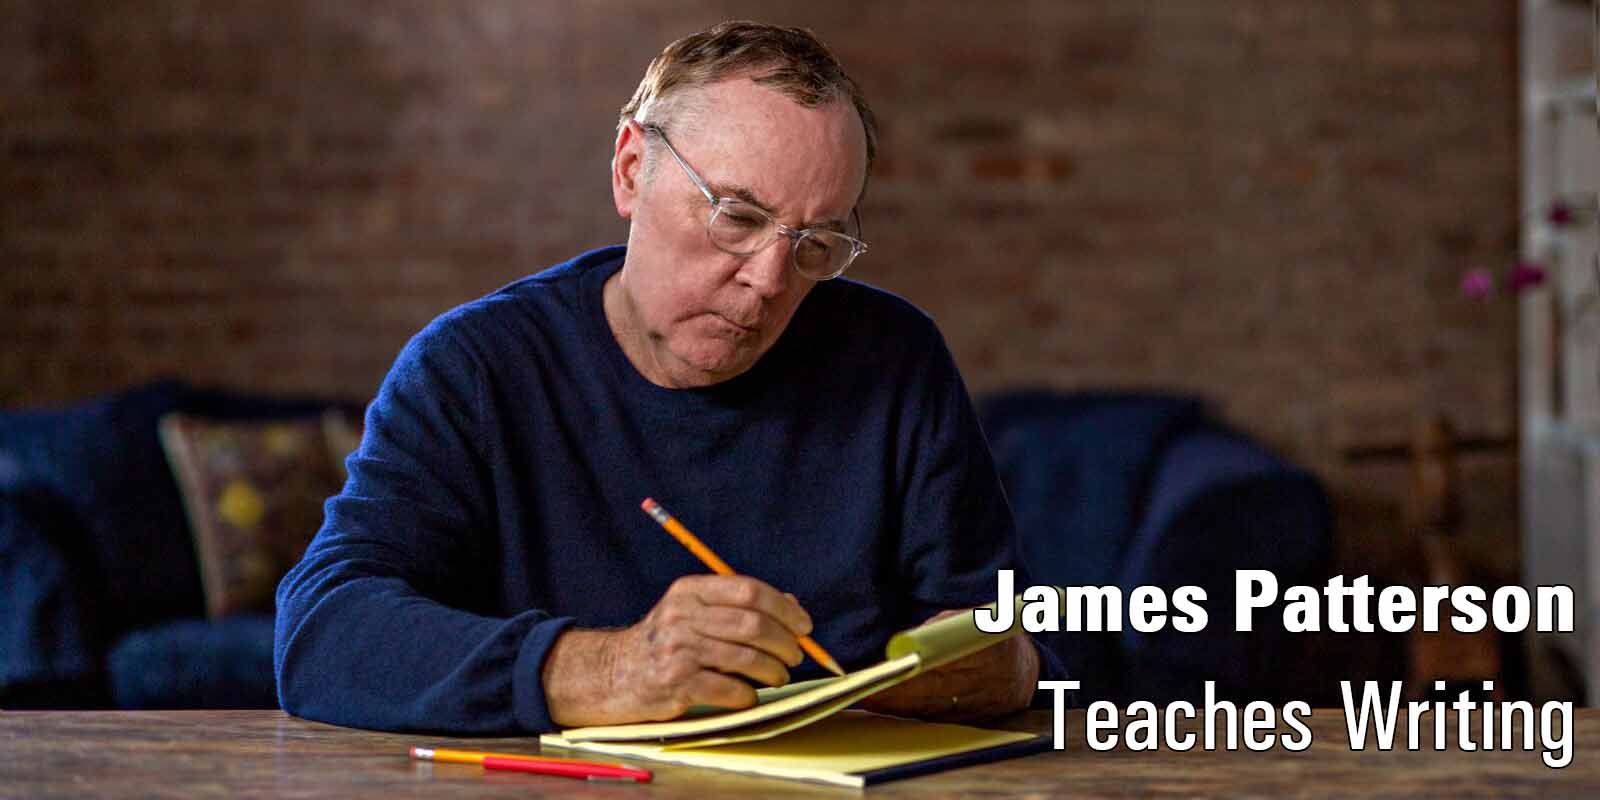 James Patterson Master Class \ Image: Master Class